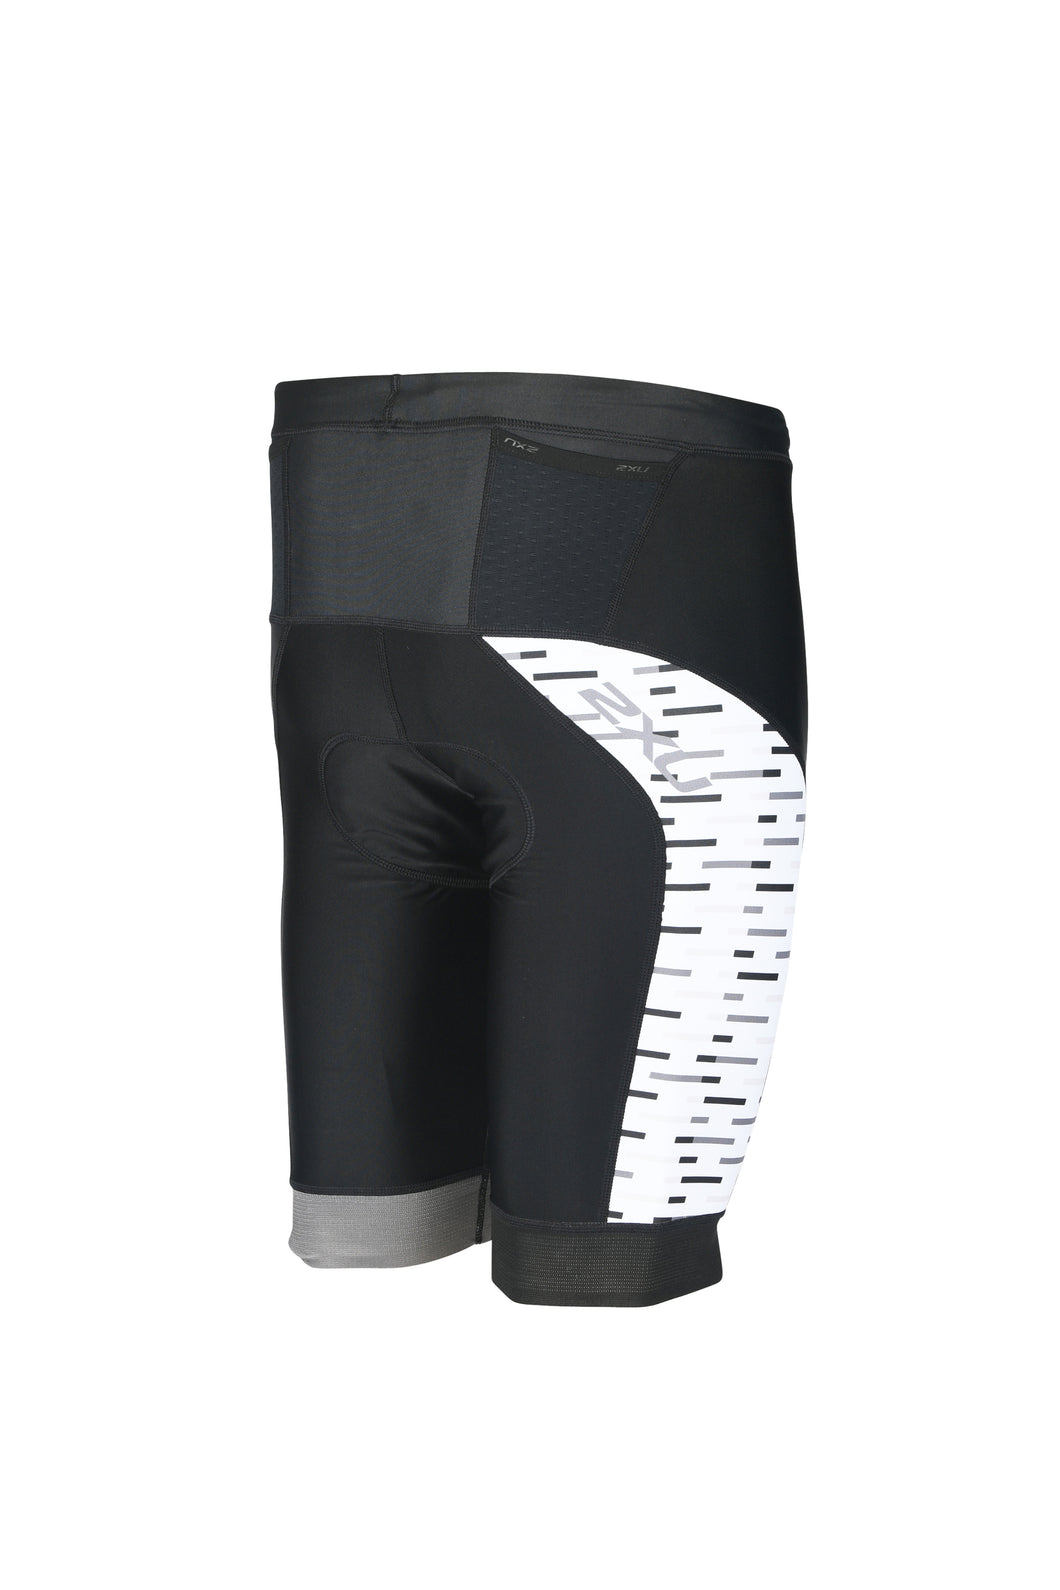 2XU Men's Tri Kit Shorts